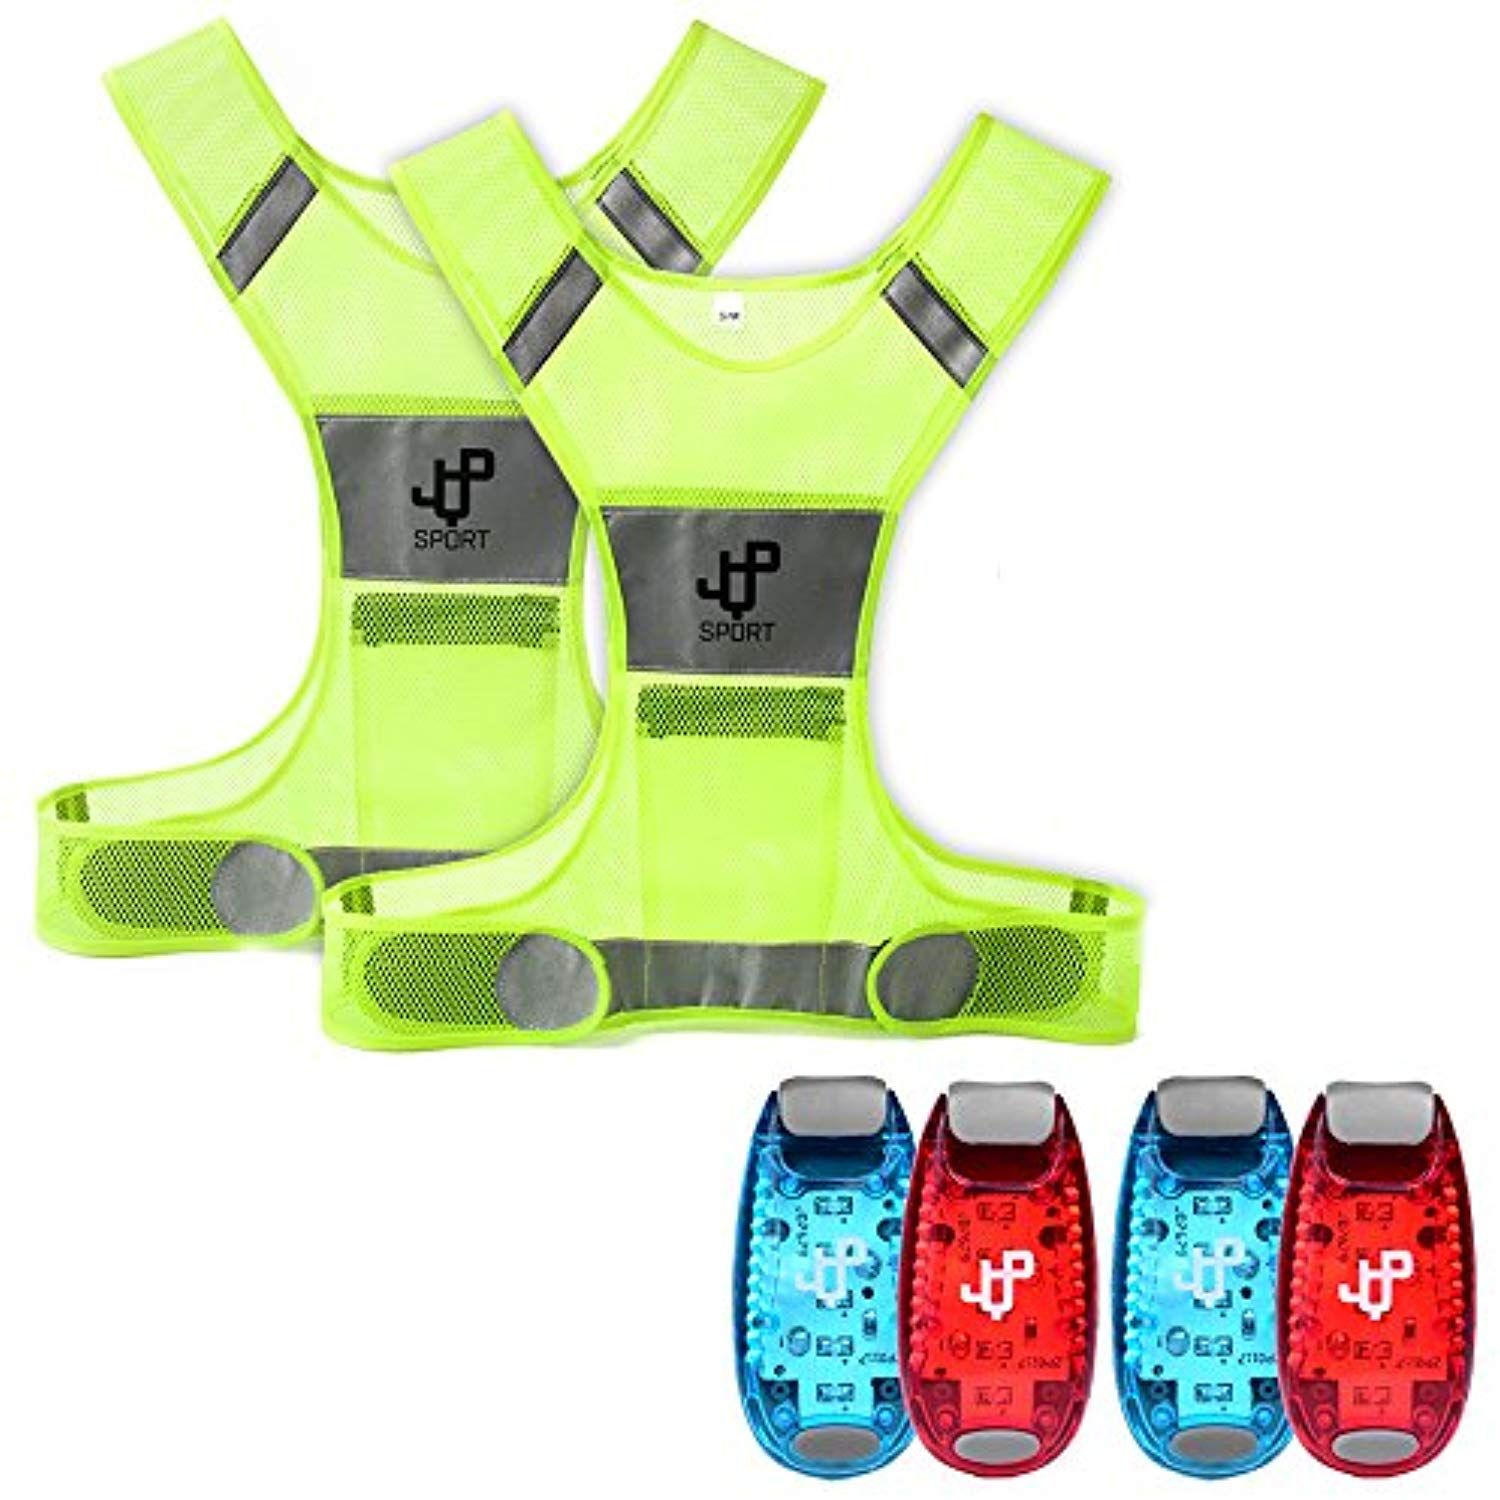 JQP Sports Running Vest and 4 LED Safety Light Sets (4